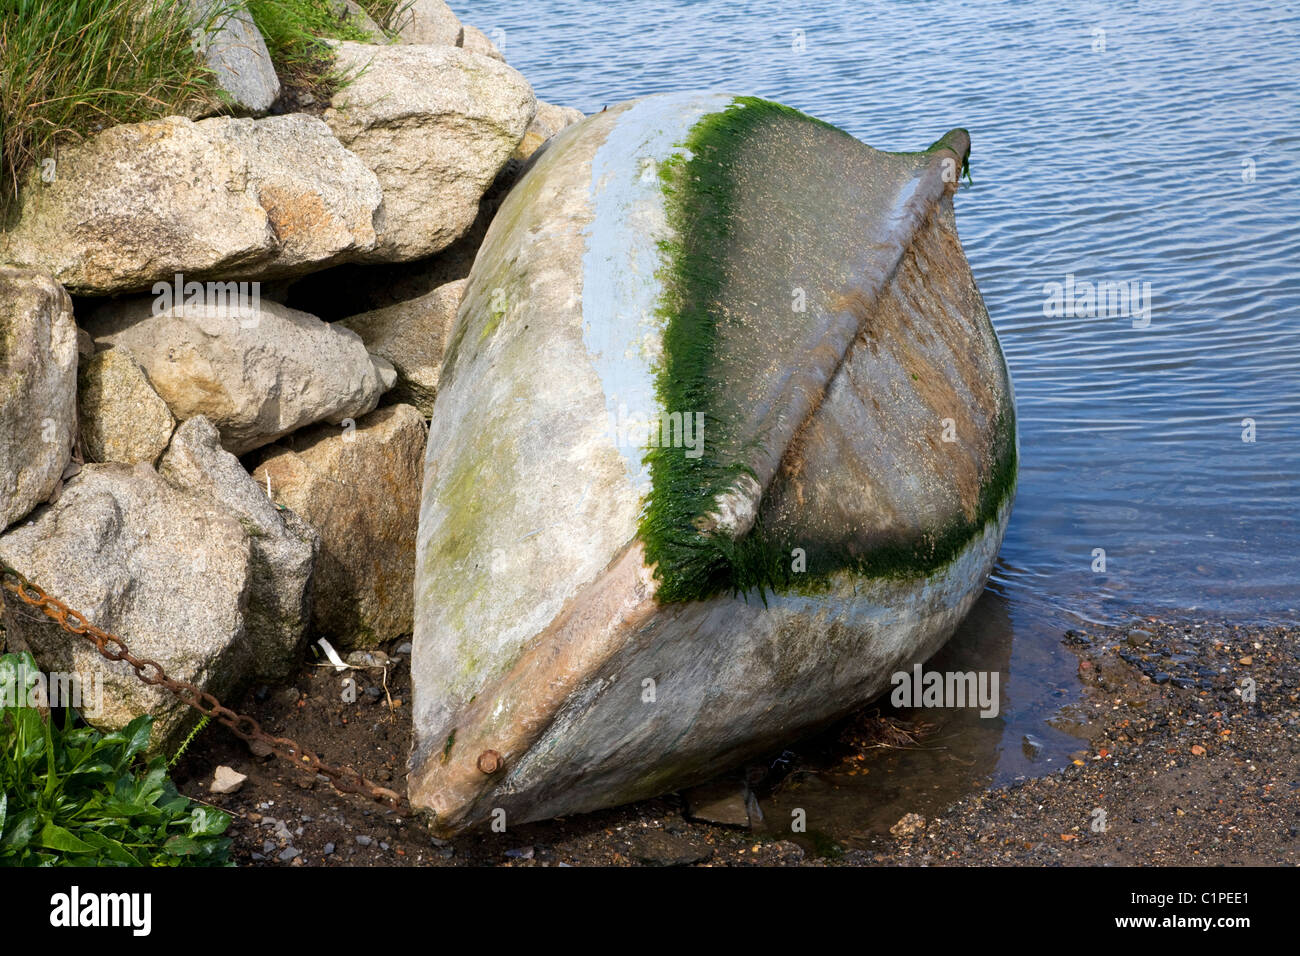 Republic of Ireland, Malahide, upside down fishing boat chained to rock - Stock Image